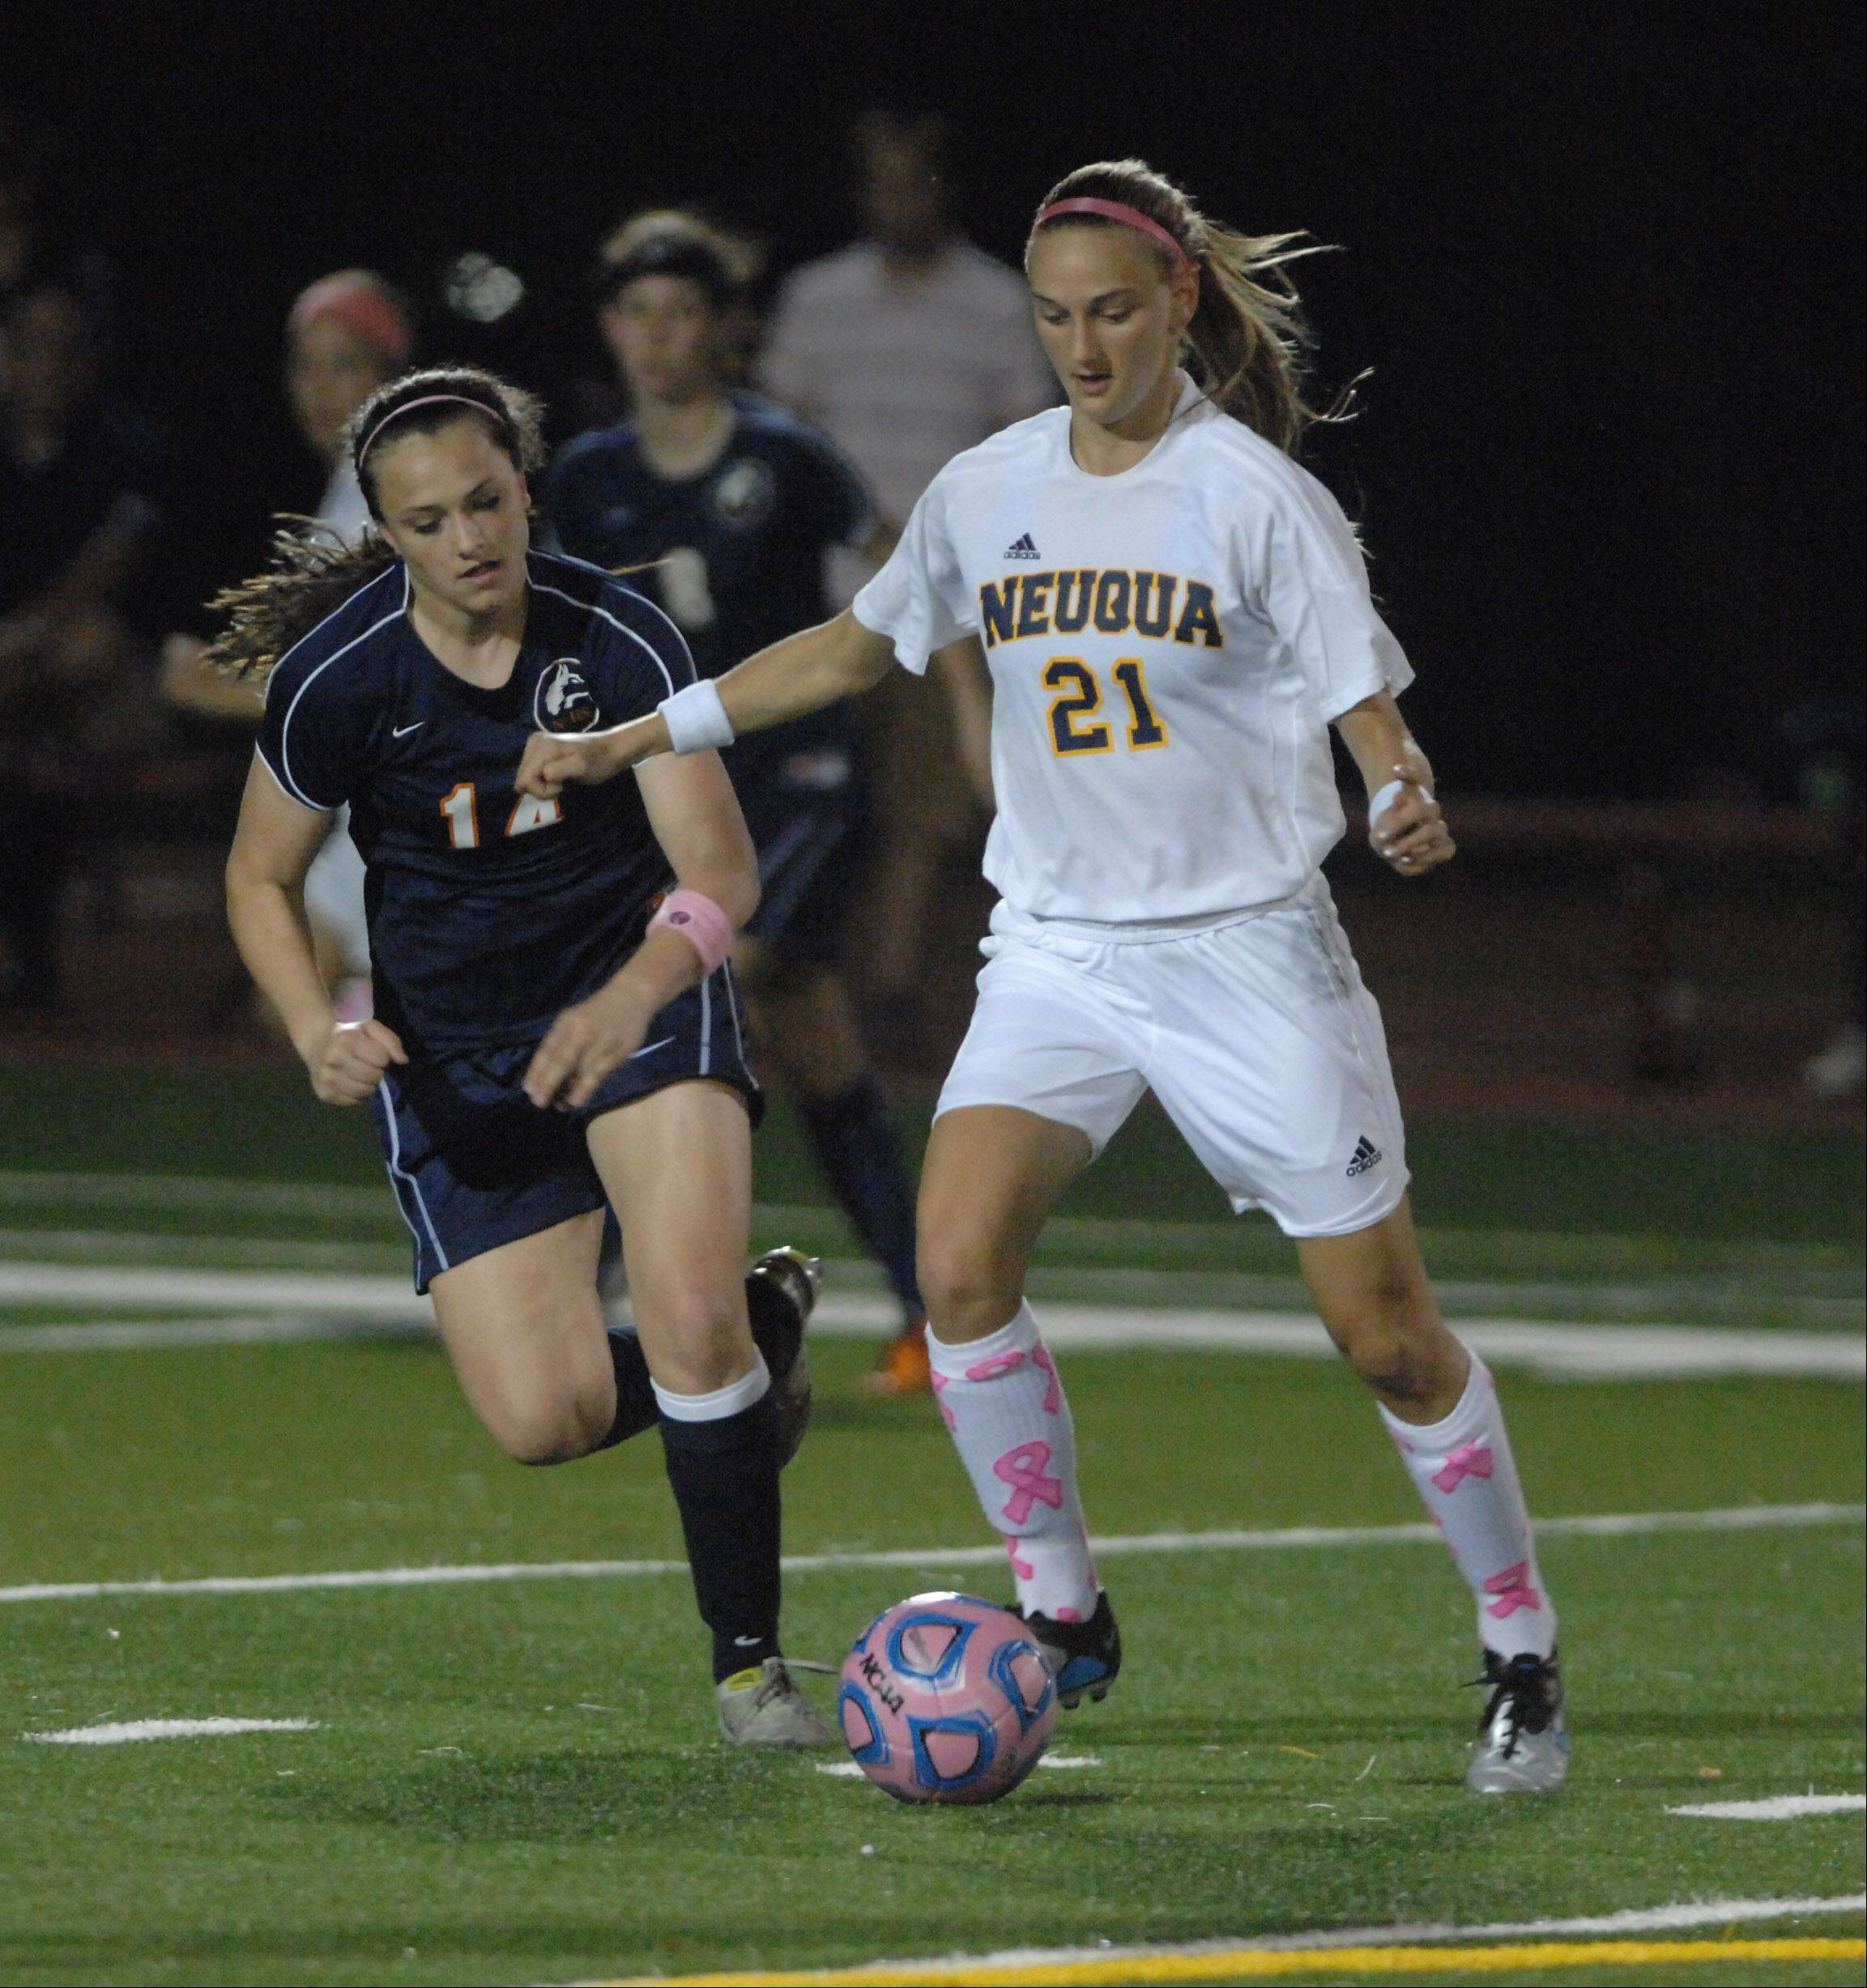 Christa Szalach of Naperville North,left.